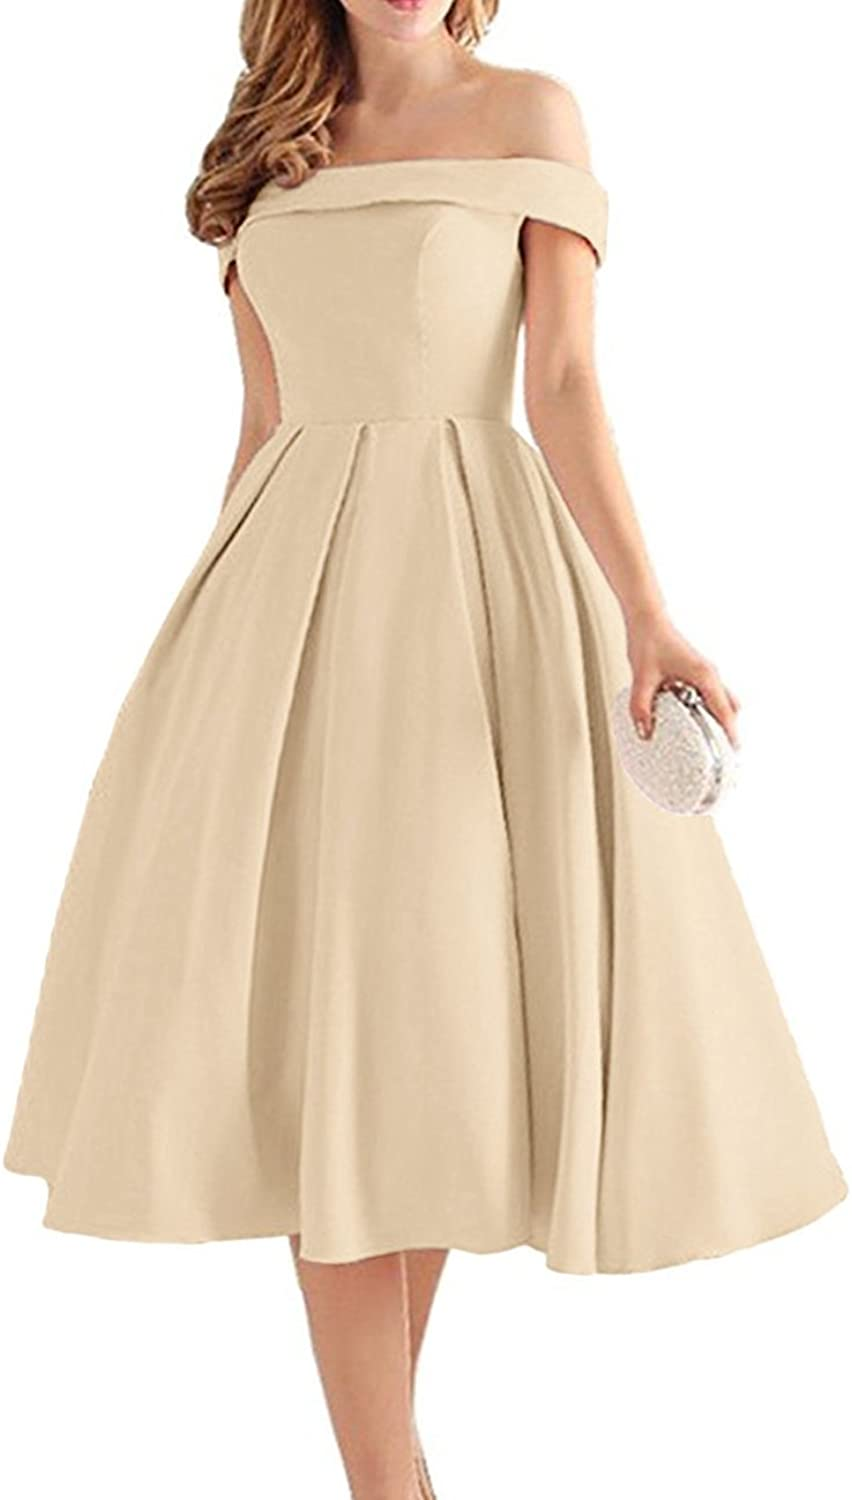 YOUTODRESS Off Shoulder Stain Prom Dresses Tea Length Bridesmaid Dresses 2018 Homecoming Gown